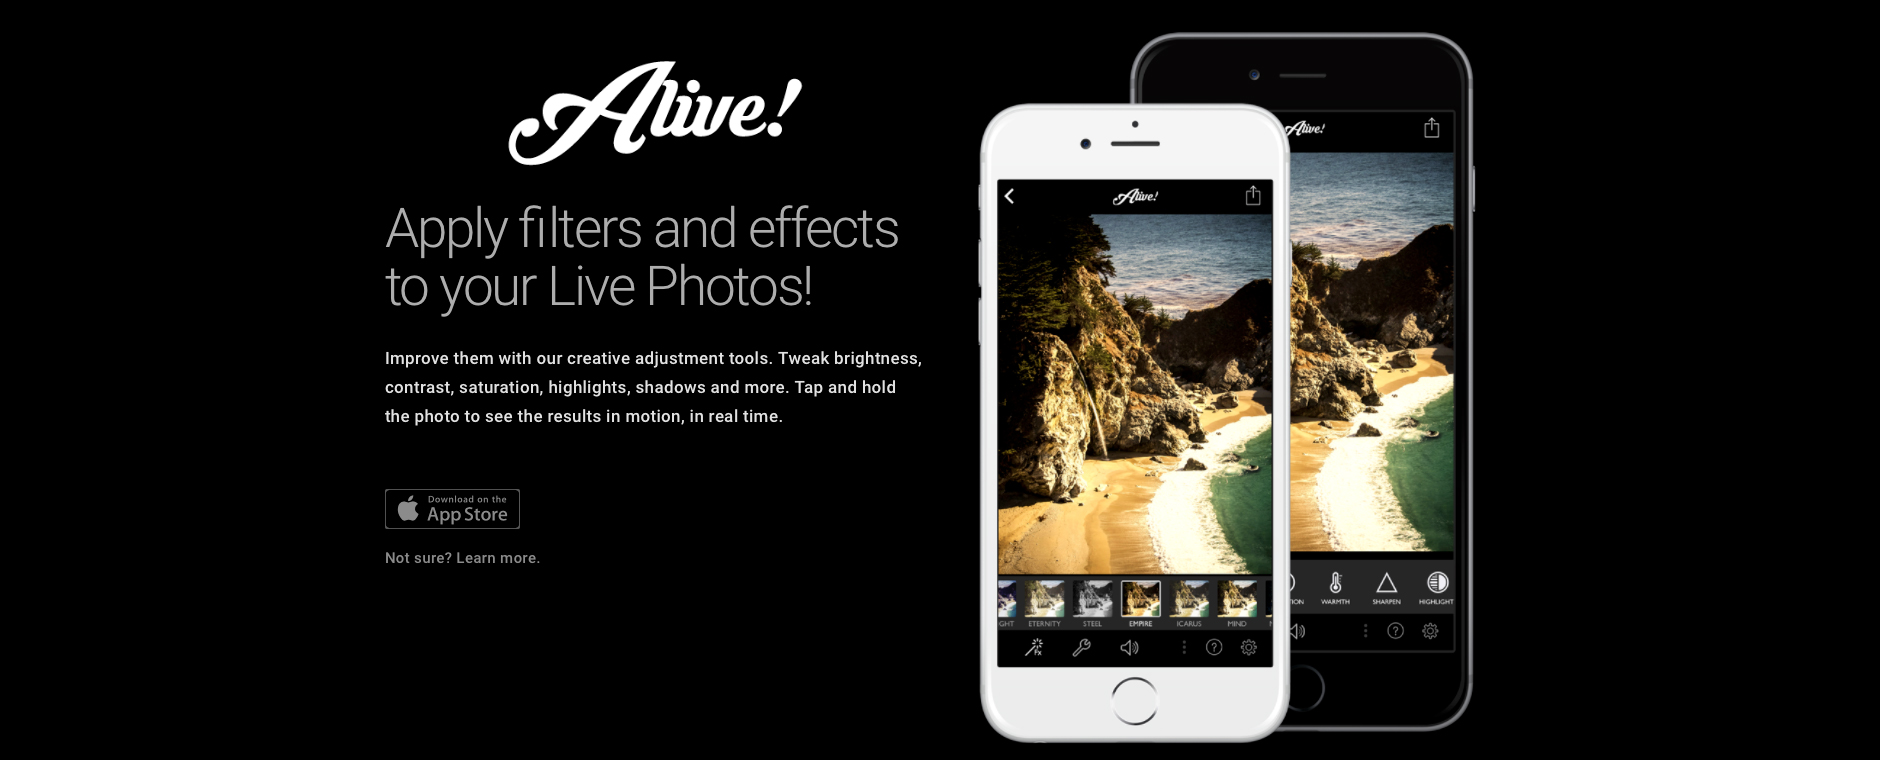 Take your Live Photos to a new level with Alive!